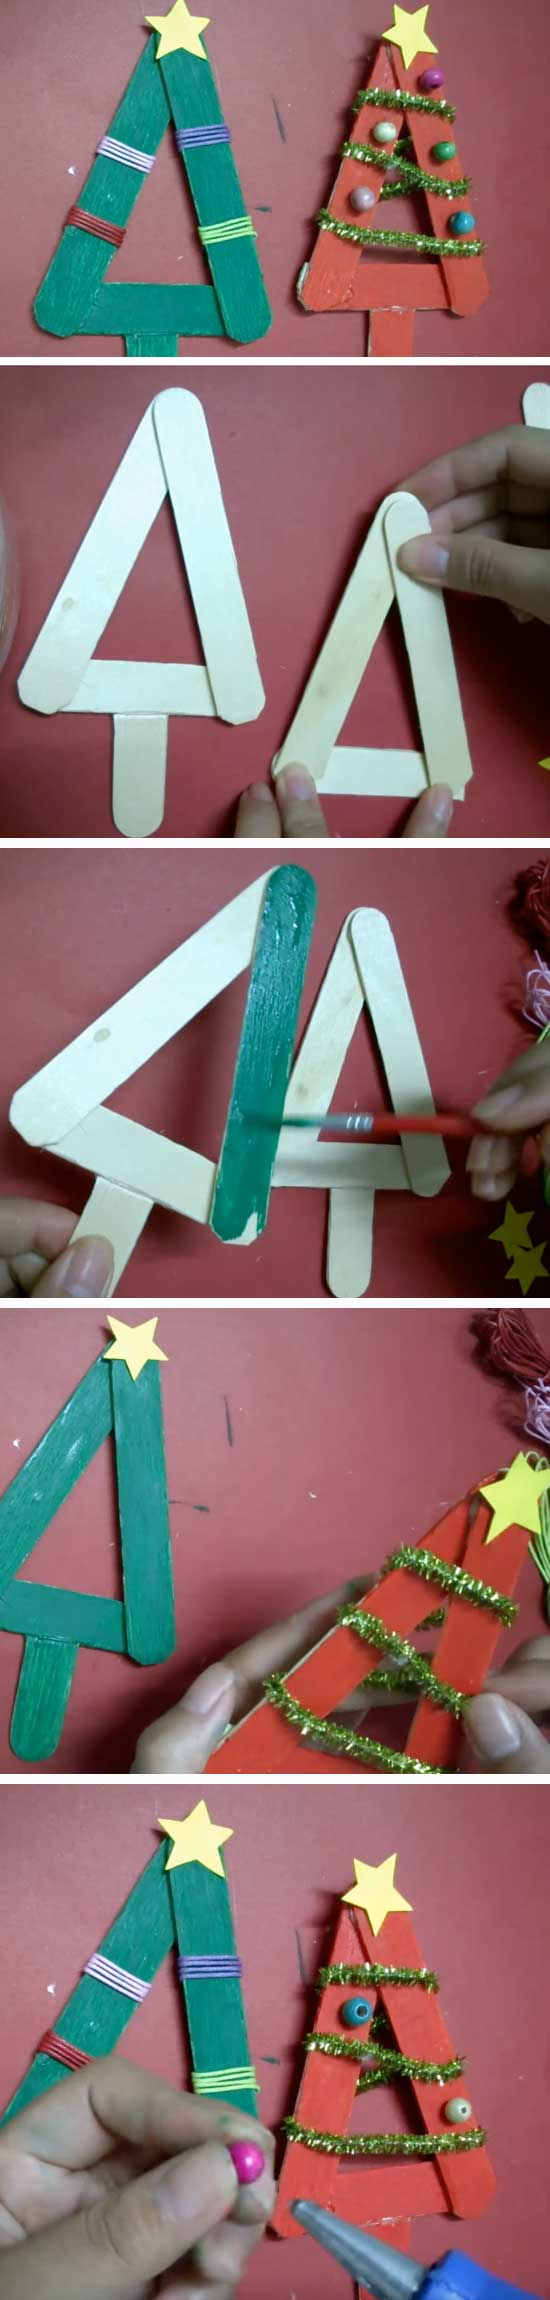 30 Diy Ideas And Tutorials To Recycle Popsicle Sticks For Christmas 2018